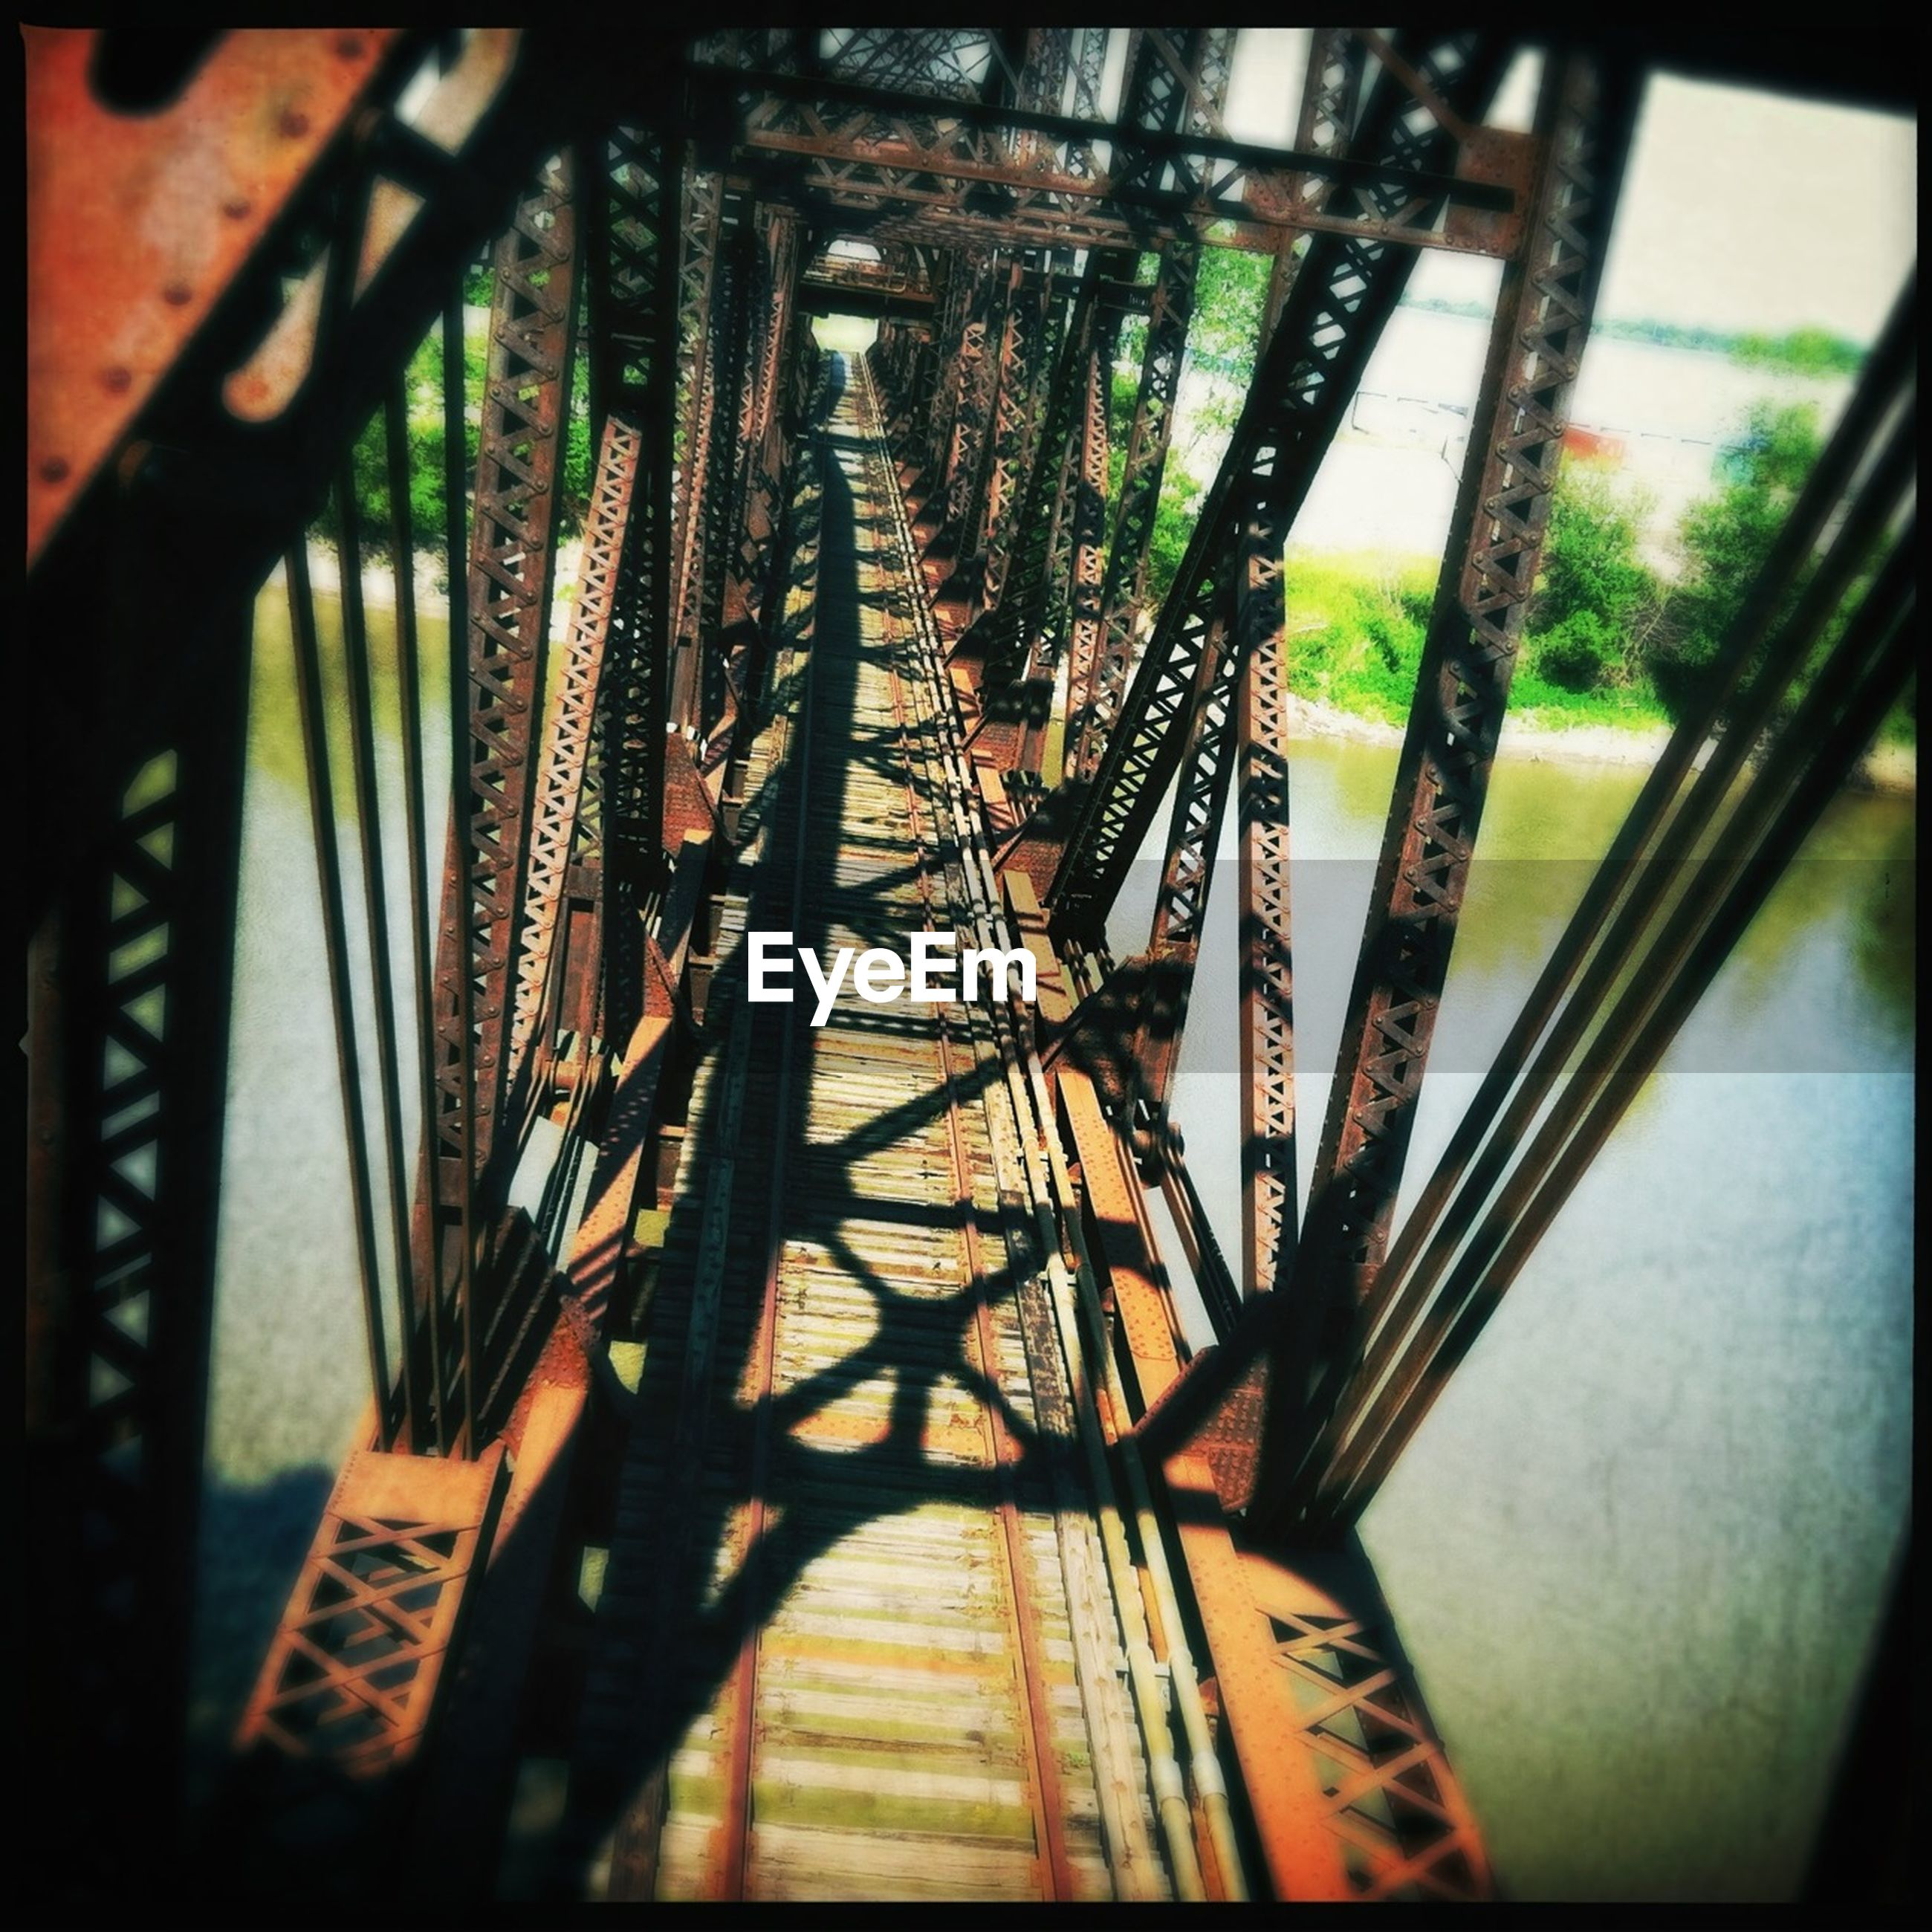 transfer print, transportation, built structure, connection, architecture, auto post production filter, metal, bridge - man made structure, the way forward, indoors, diminishing perspective, low angle view, engineering, railroad track, rail transportation, no people, railing, day, metallic, bridge